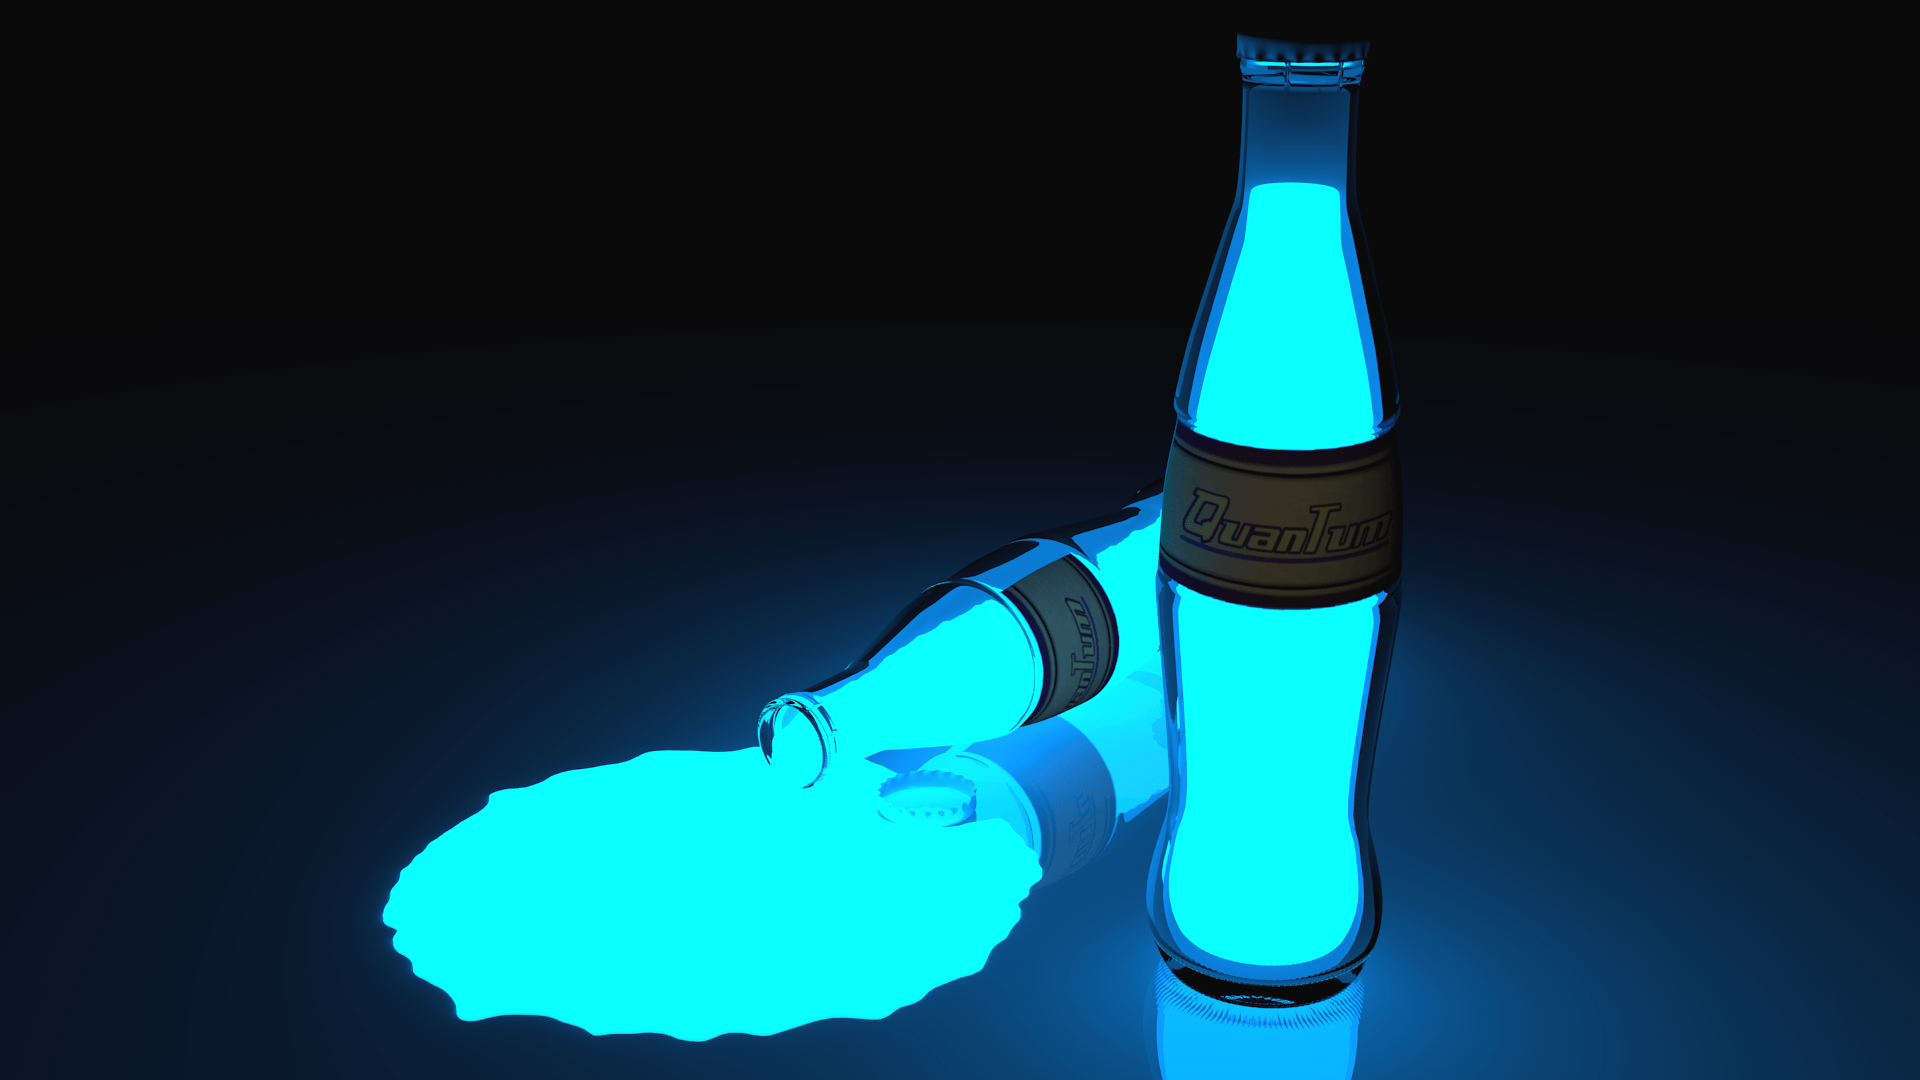 Fallout 3 Nuka Cola Wallpapers Wallpaper Cave